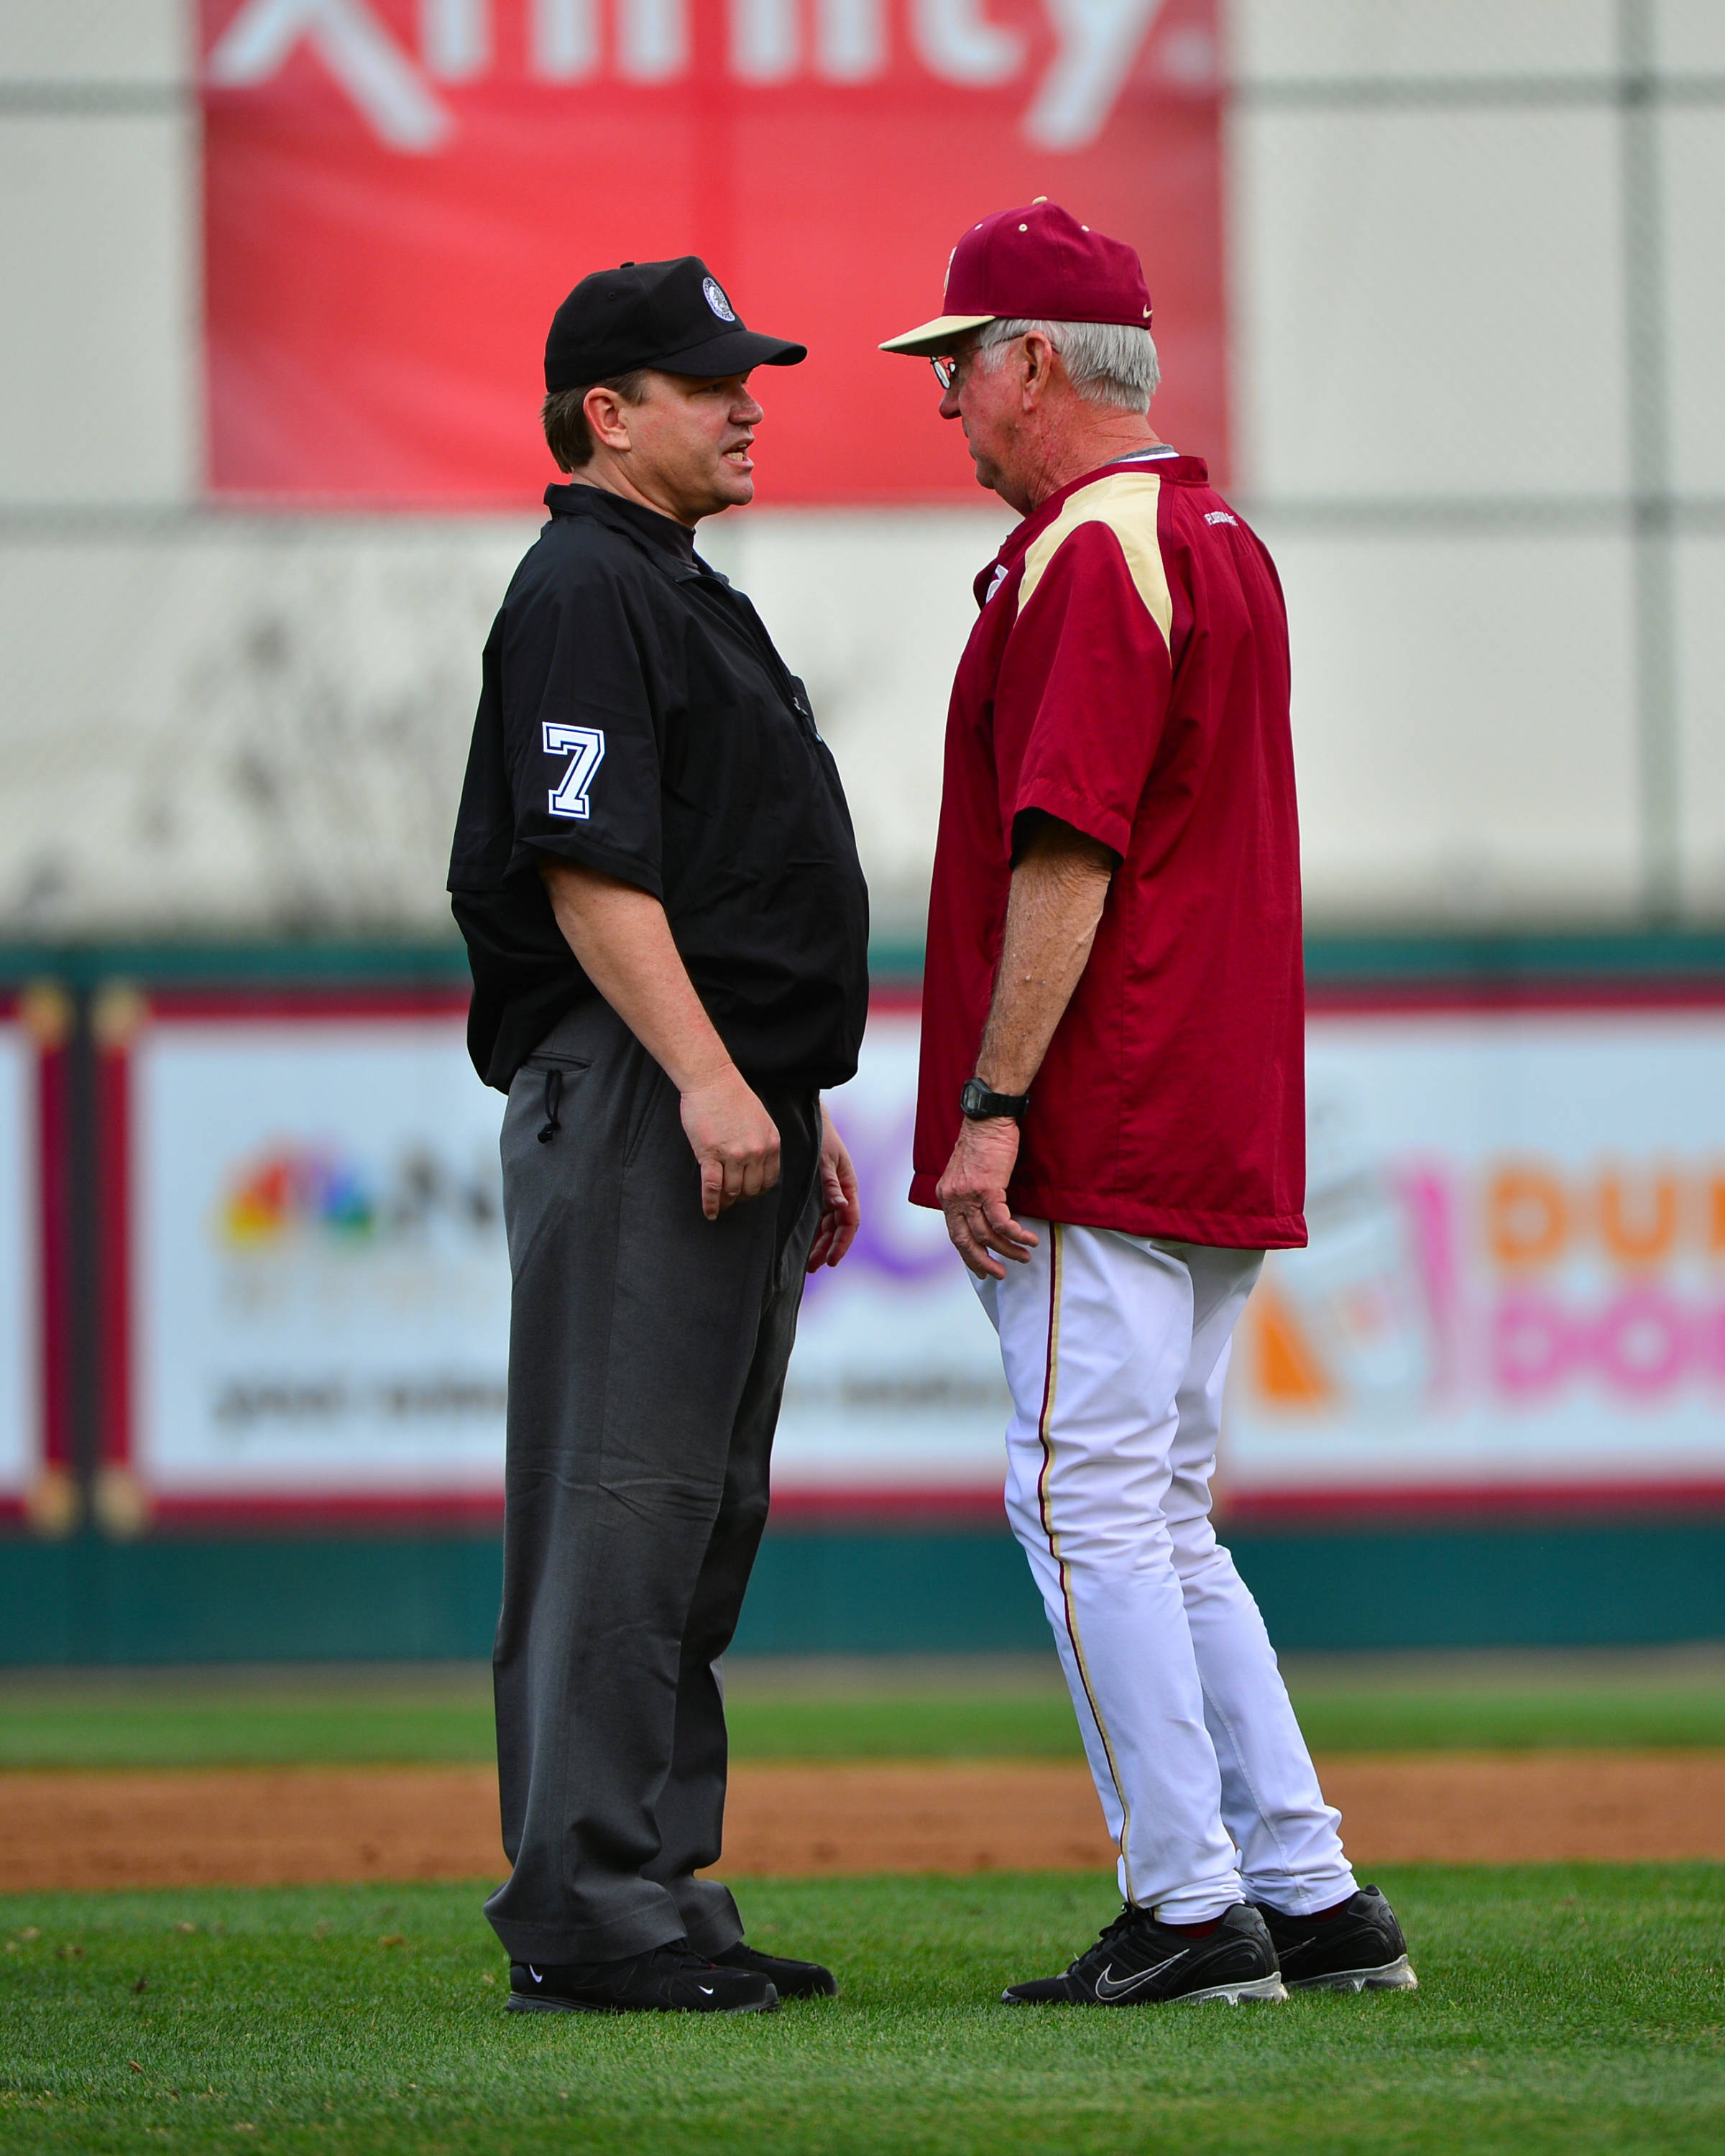 Head coach Mike Martin asks about a call during the game.